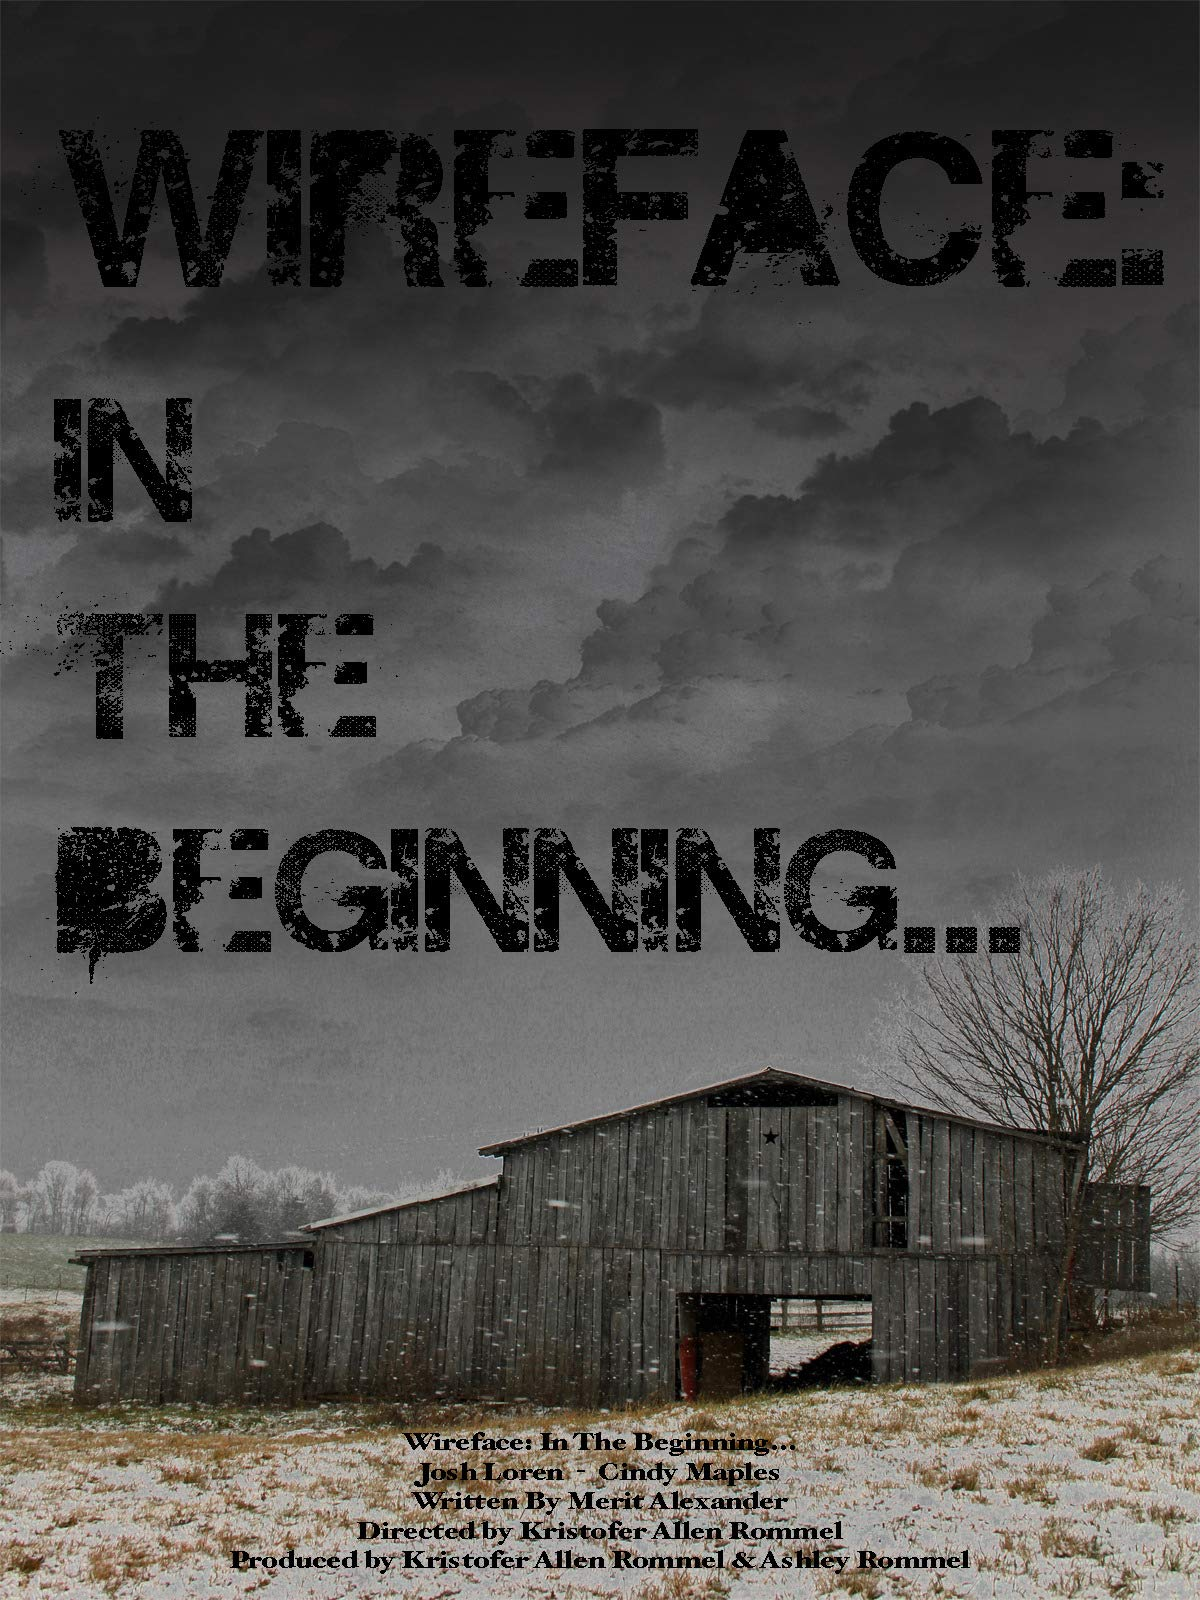 Wireface: In the Beginning